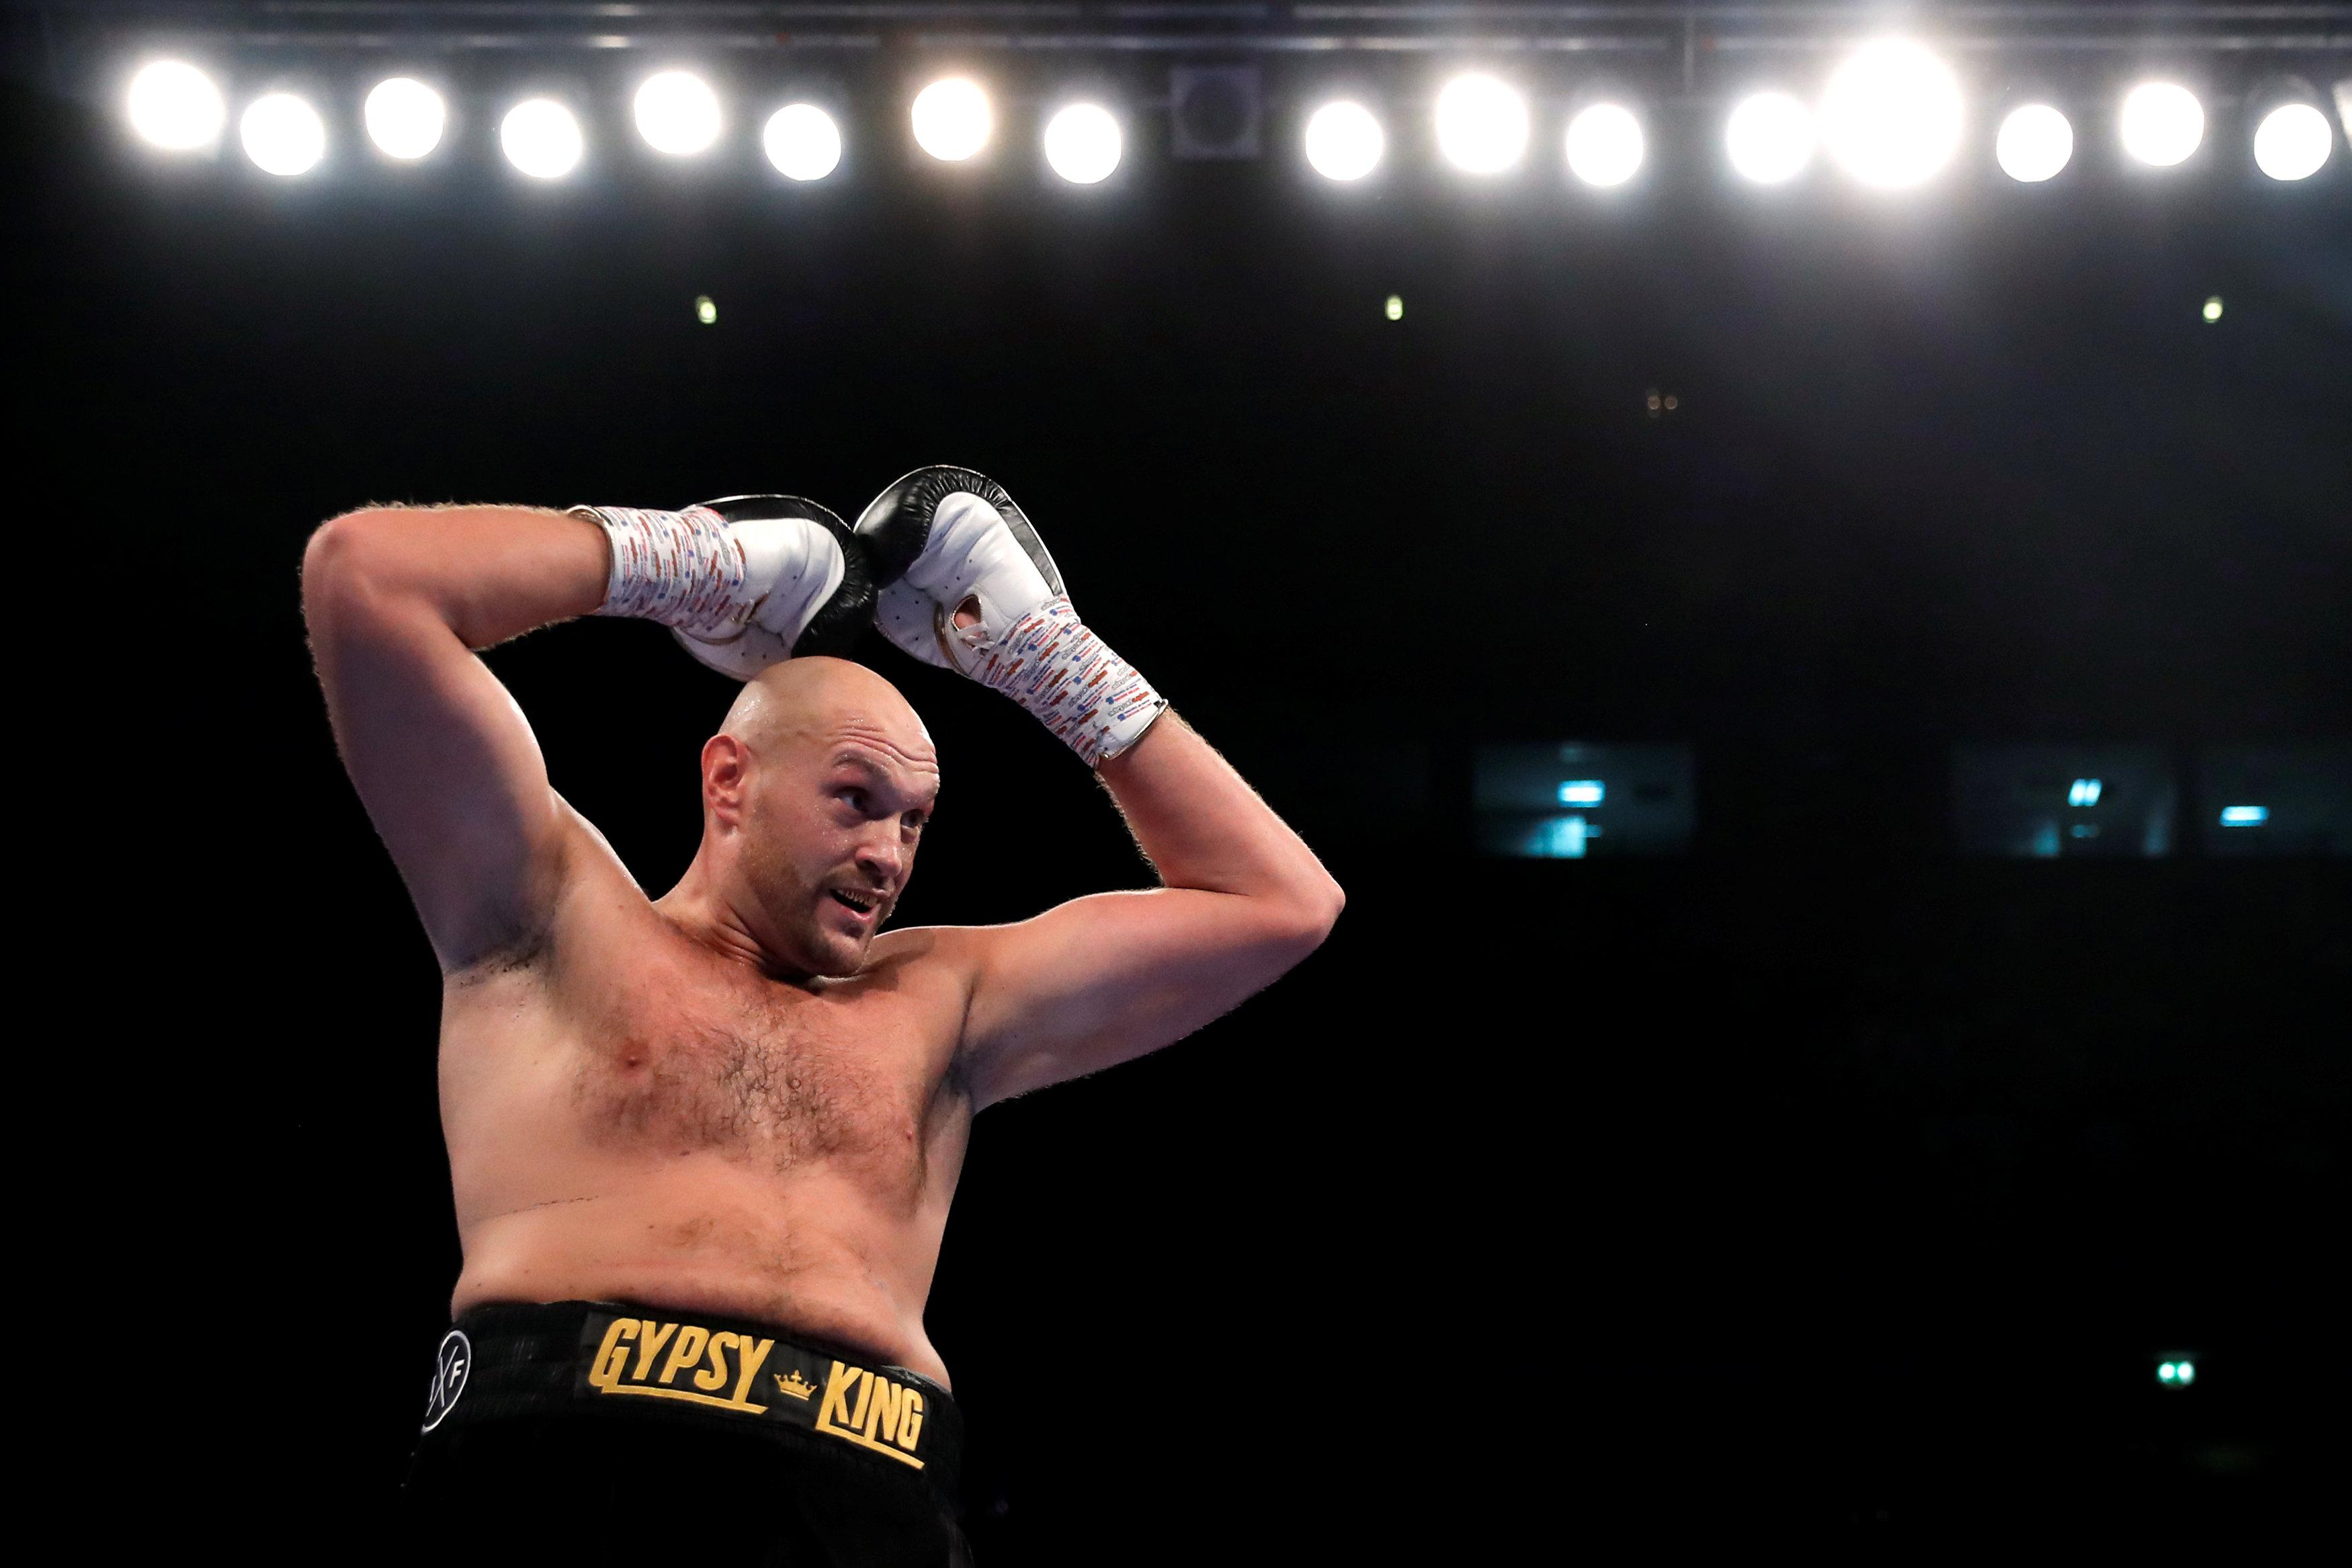 Tyson Fury is adamant he will be back to winning world titles - but after his first fight back, he has a lot still to do